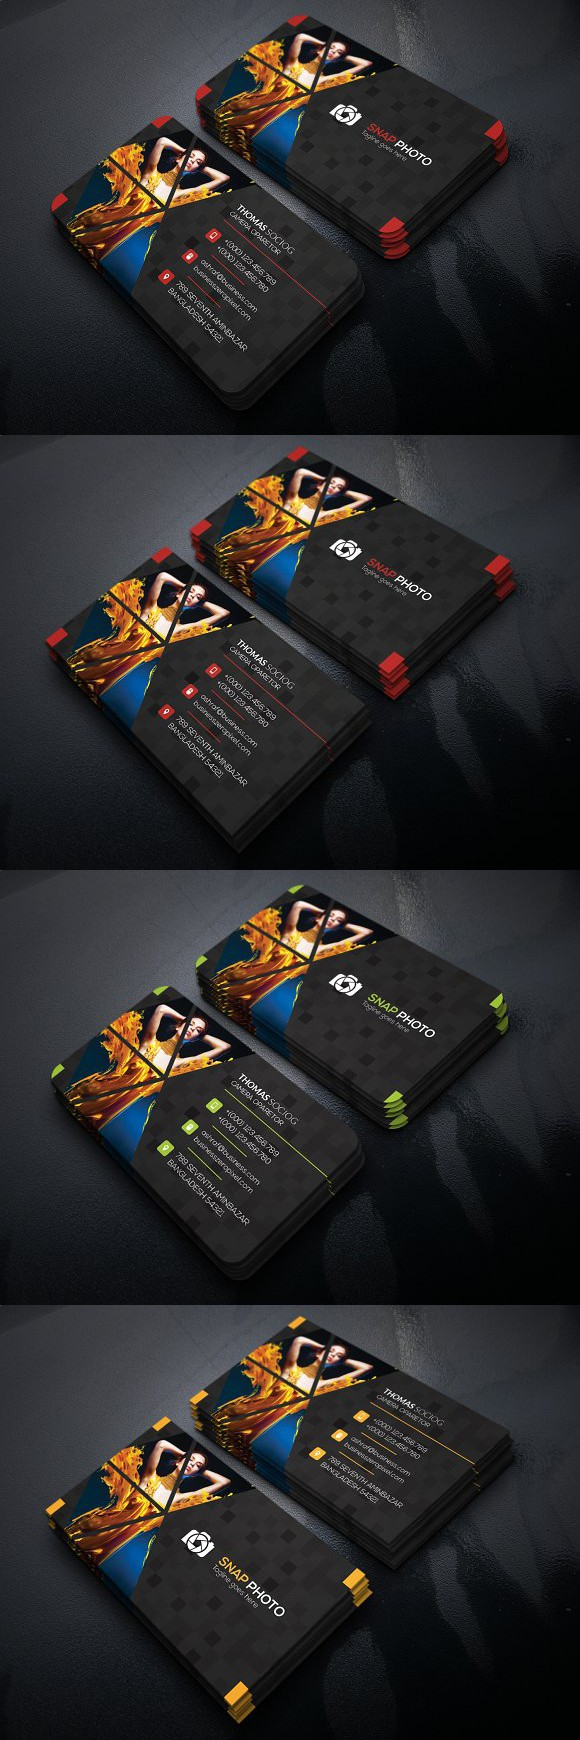 Photography Business Cards Business Card Templates Business Card